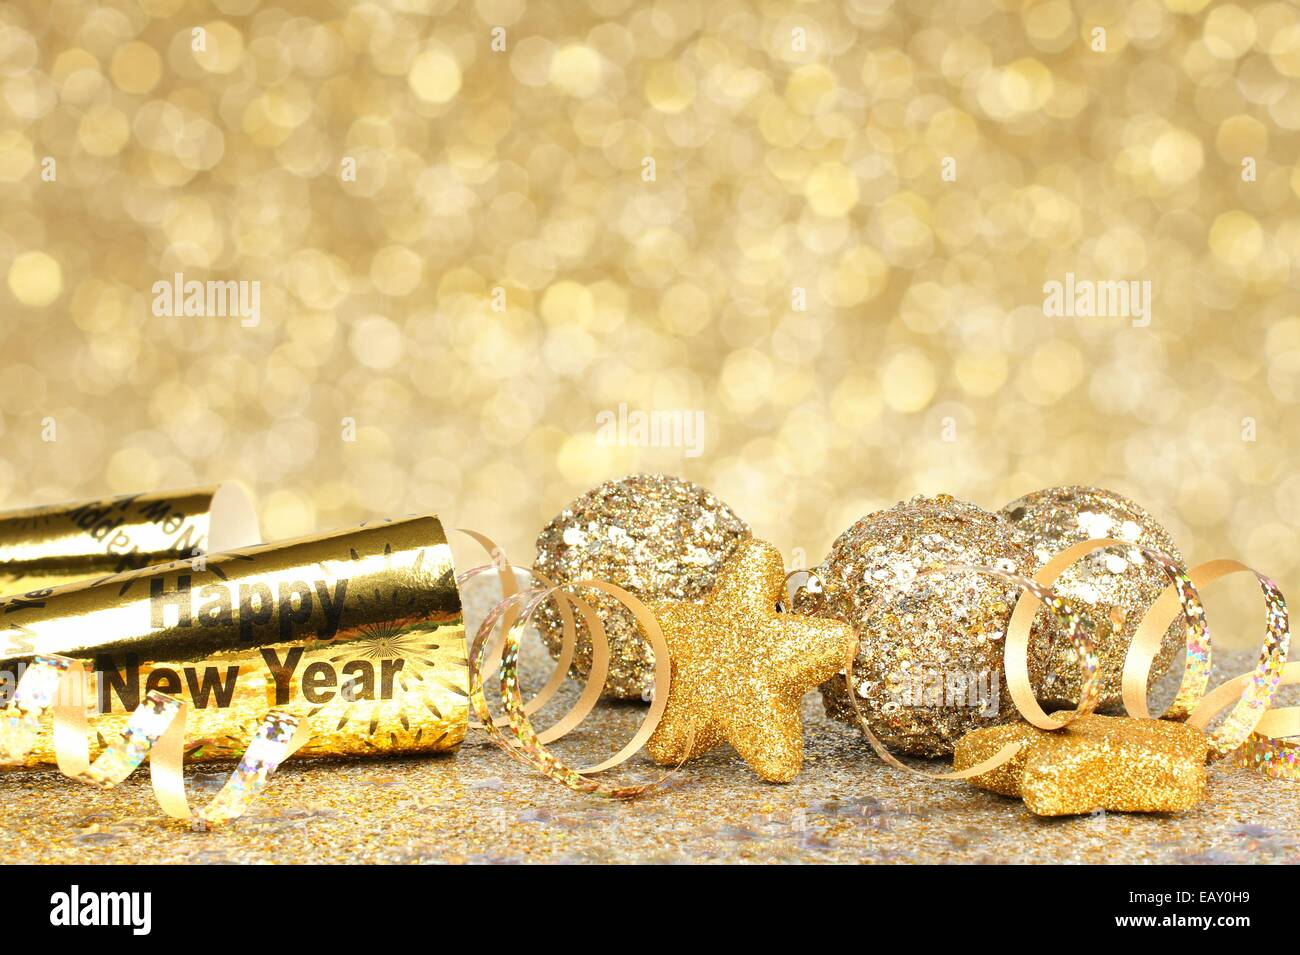 new years eve border of confetti and golden decorations on a twinkling gold